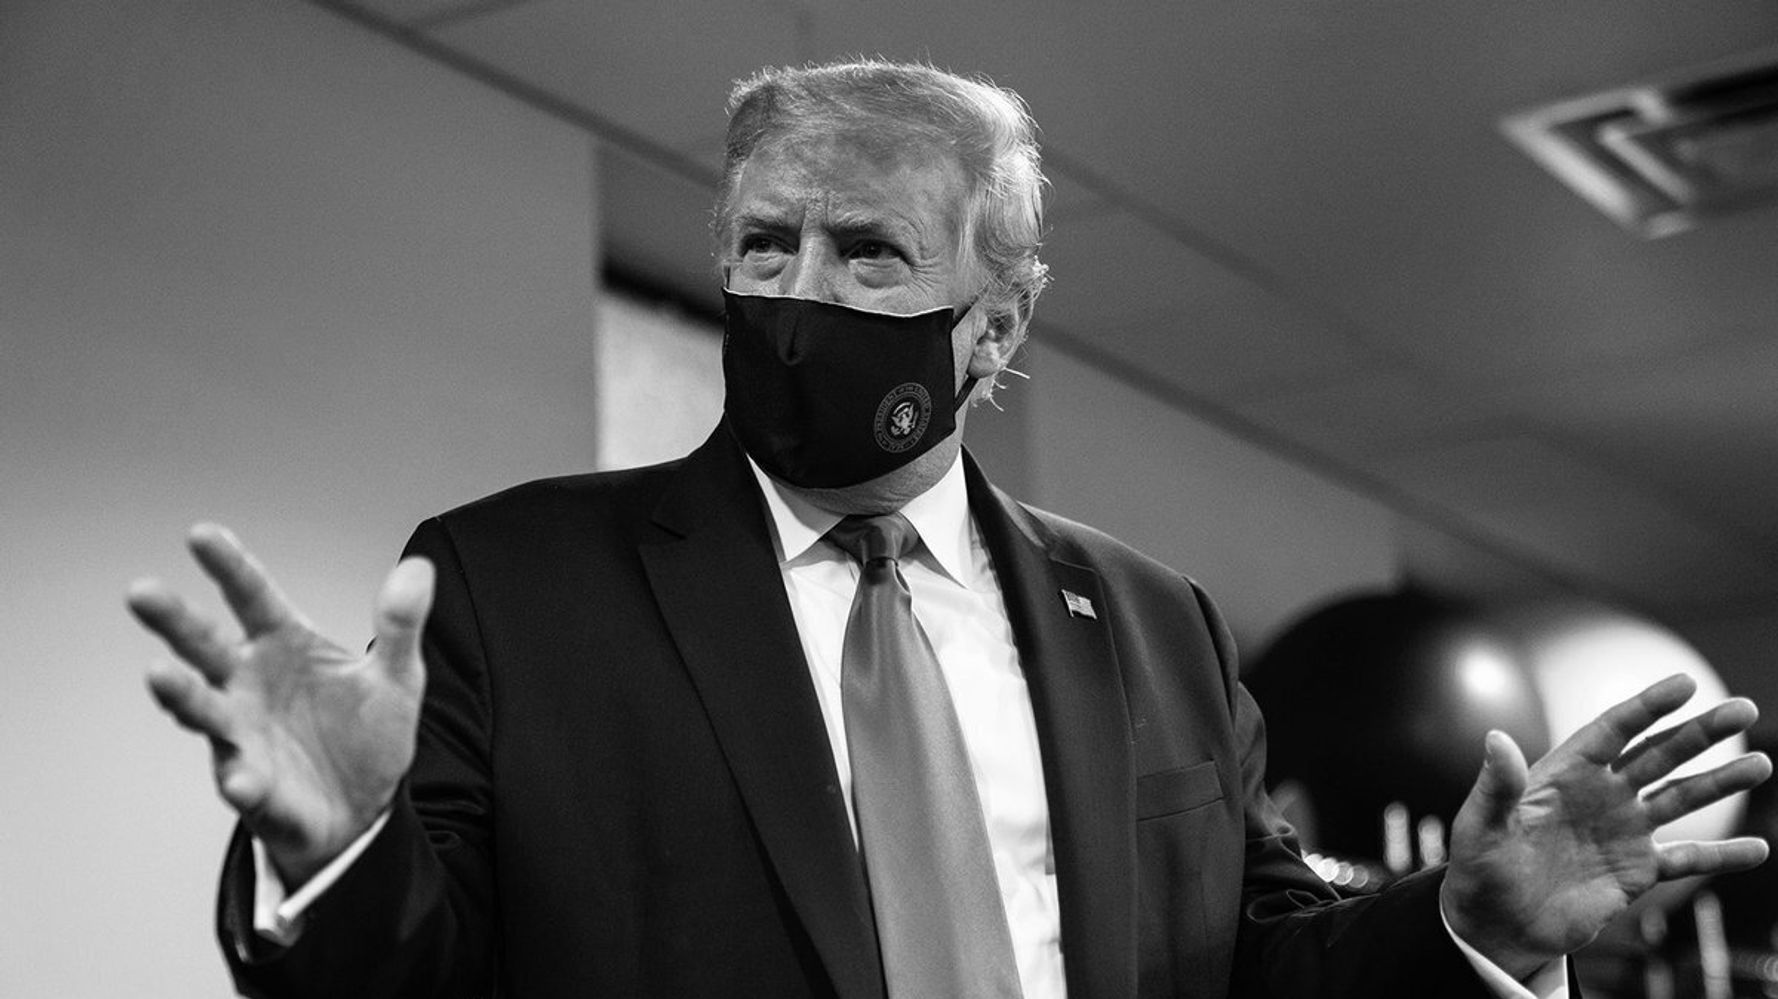 Trump Now Says Face Masks Are Patriotic But Twitter Users Aren't Impressed